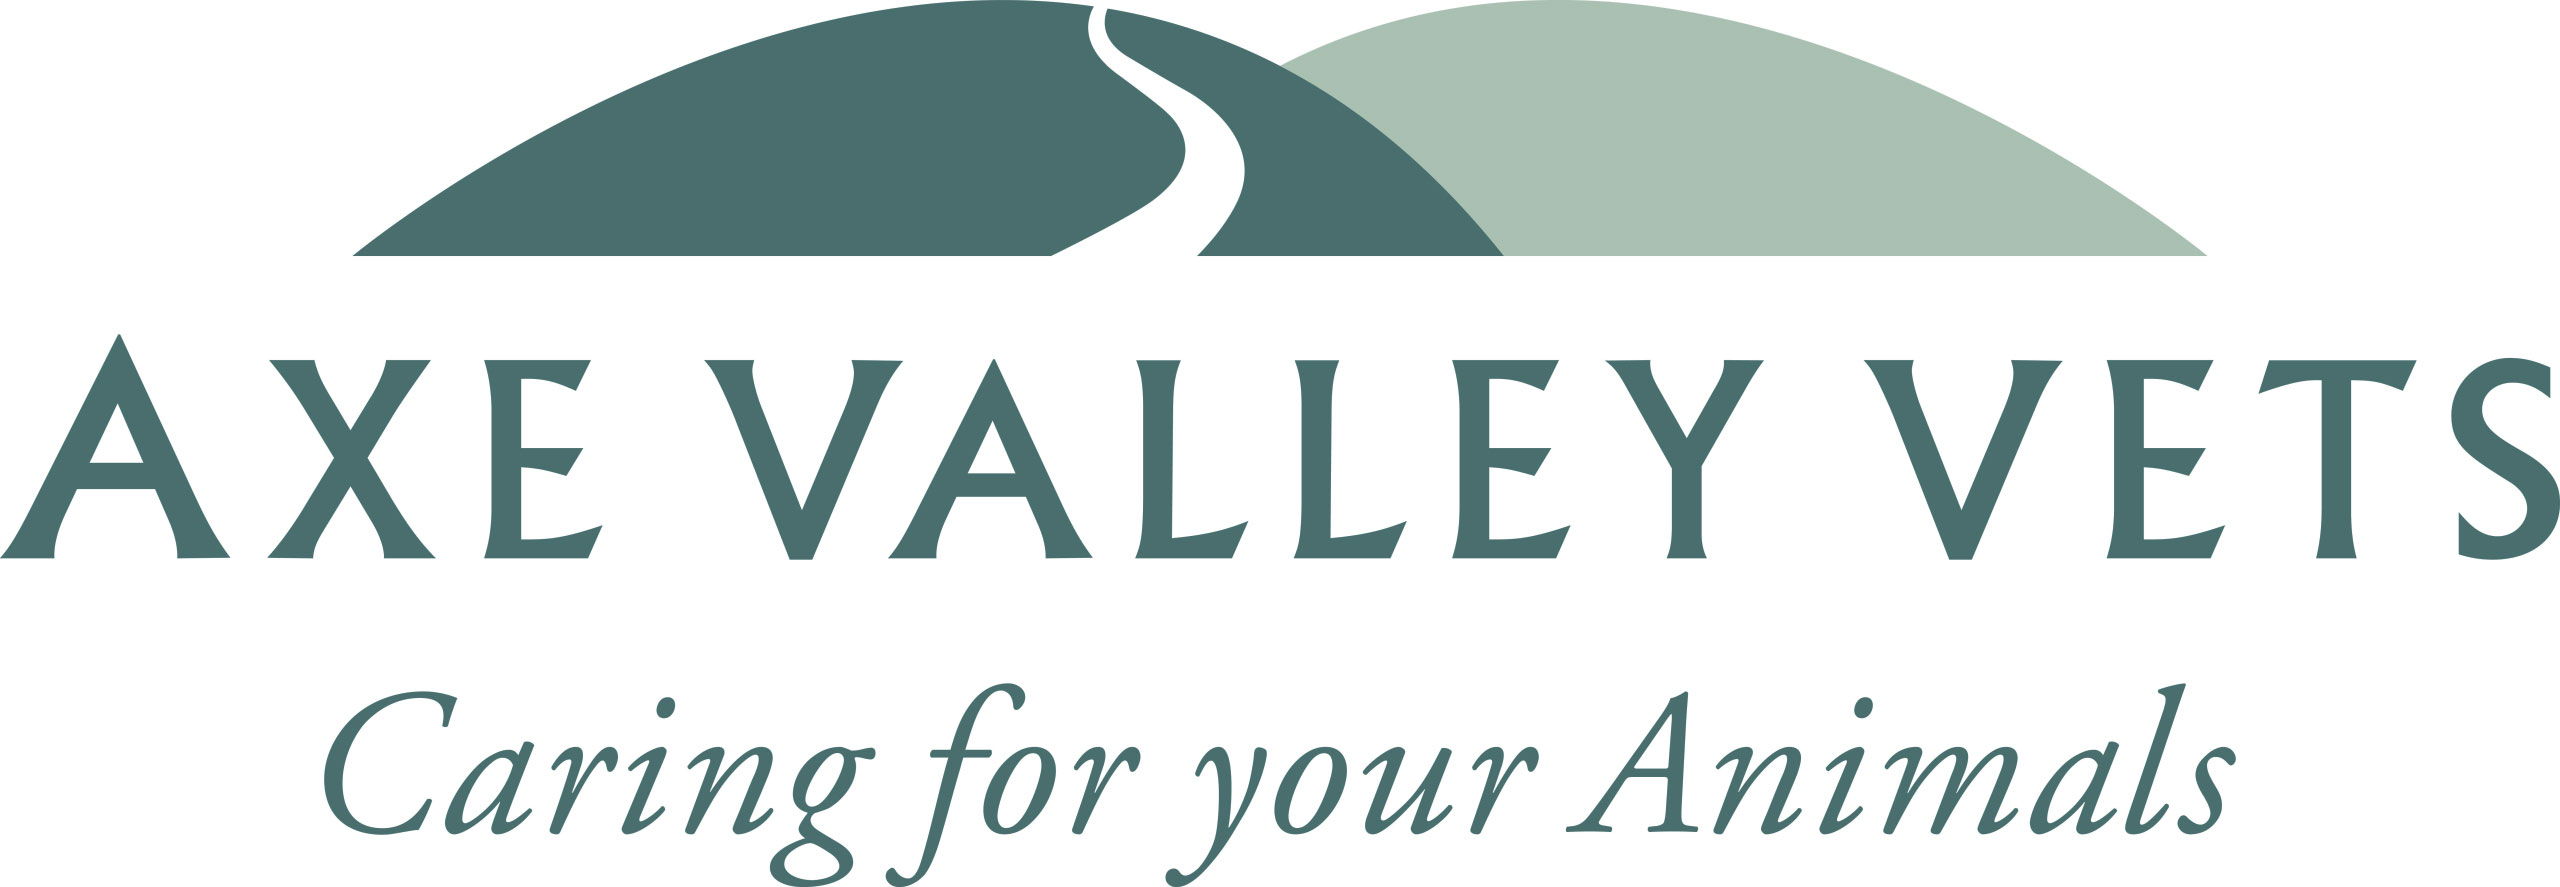 Axe Valley Vets